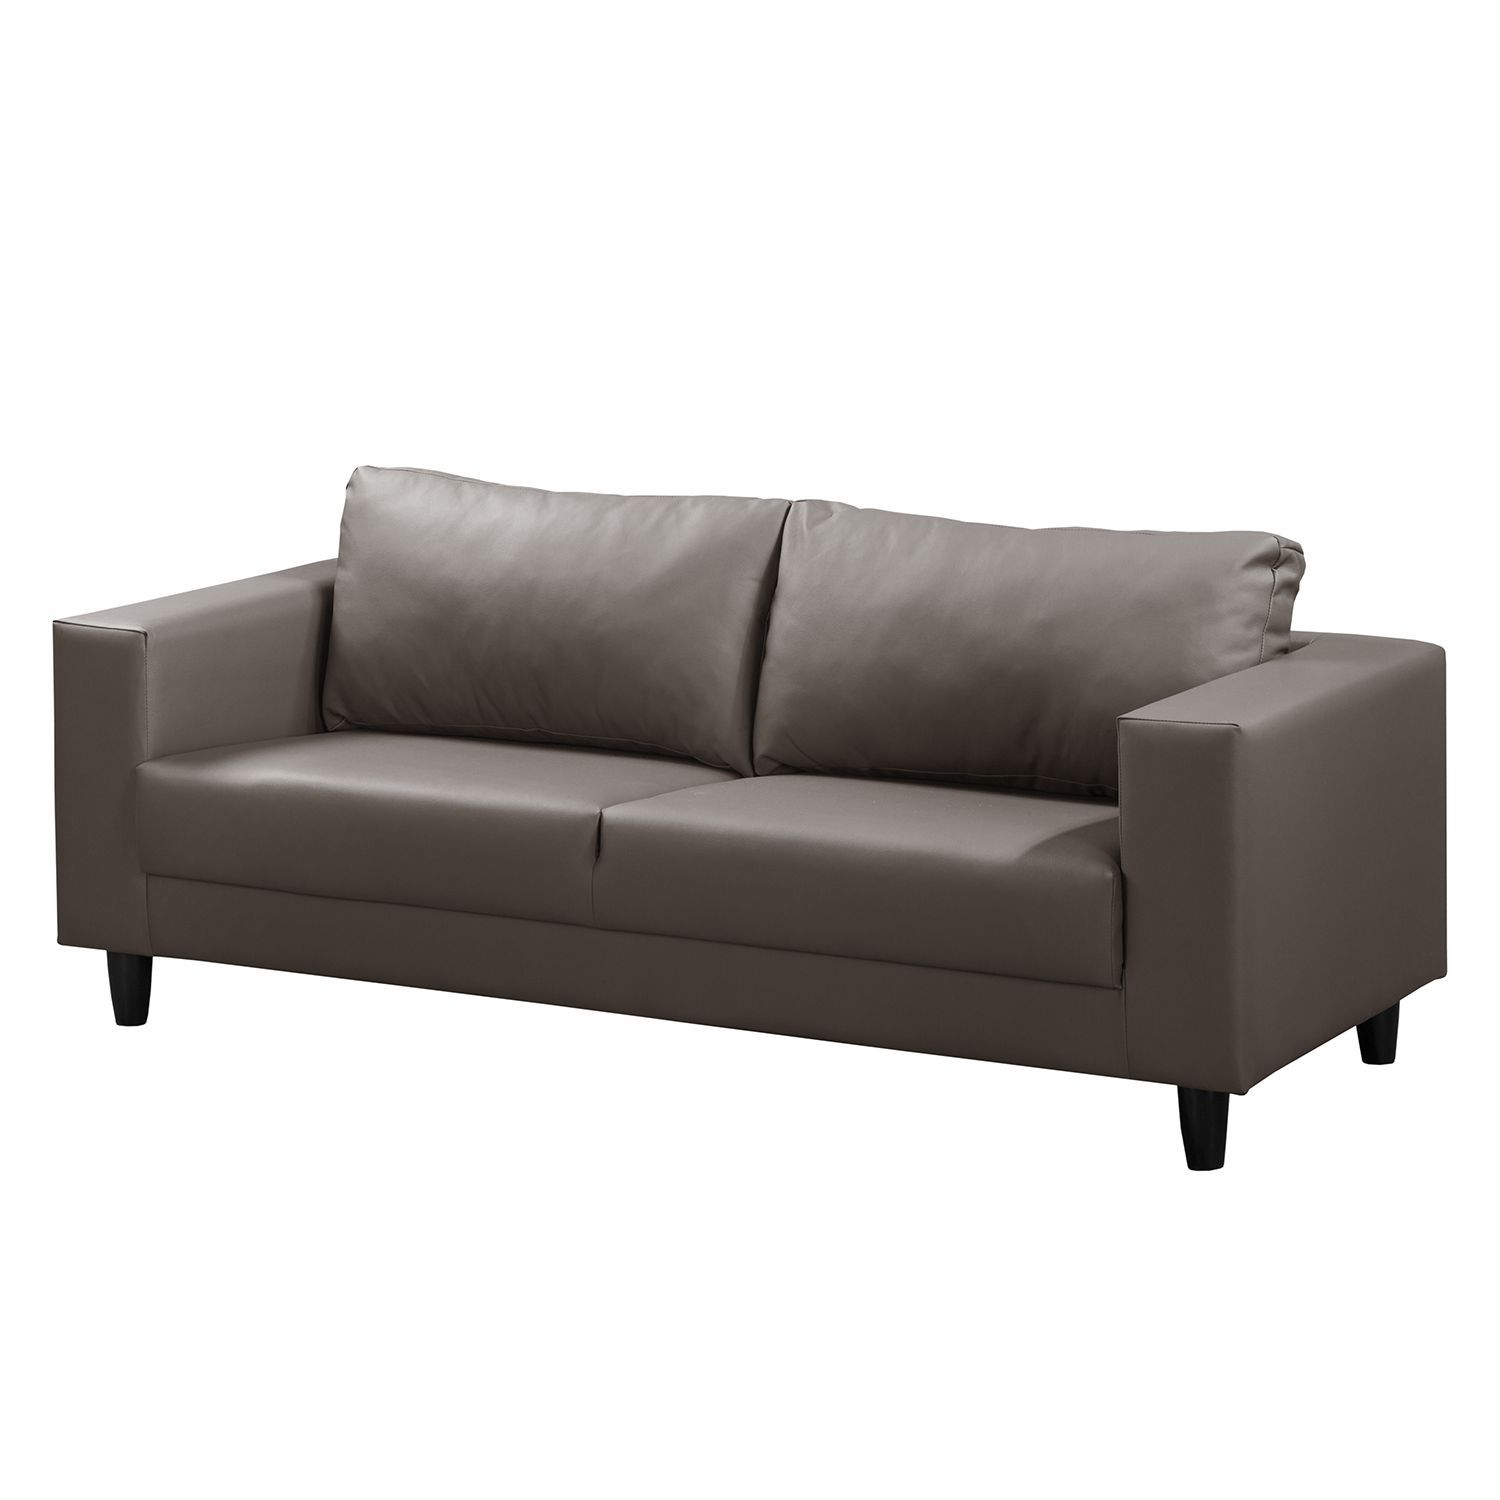 Canape Bexwell 3 Places In 2020 Sofa Mit Relaxfunktion Sofas Und Sofa